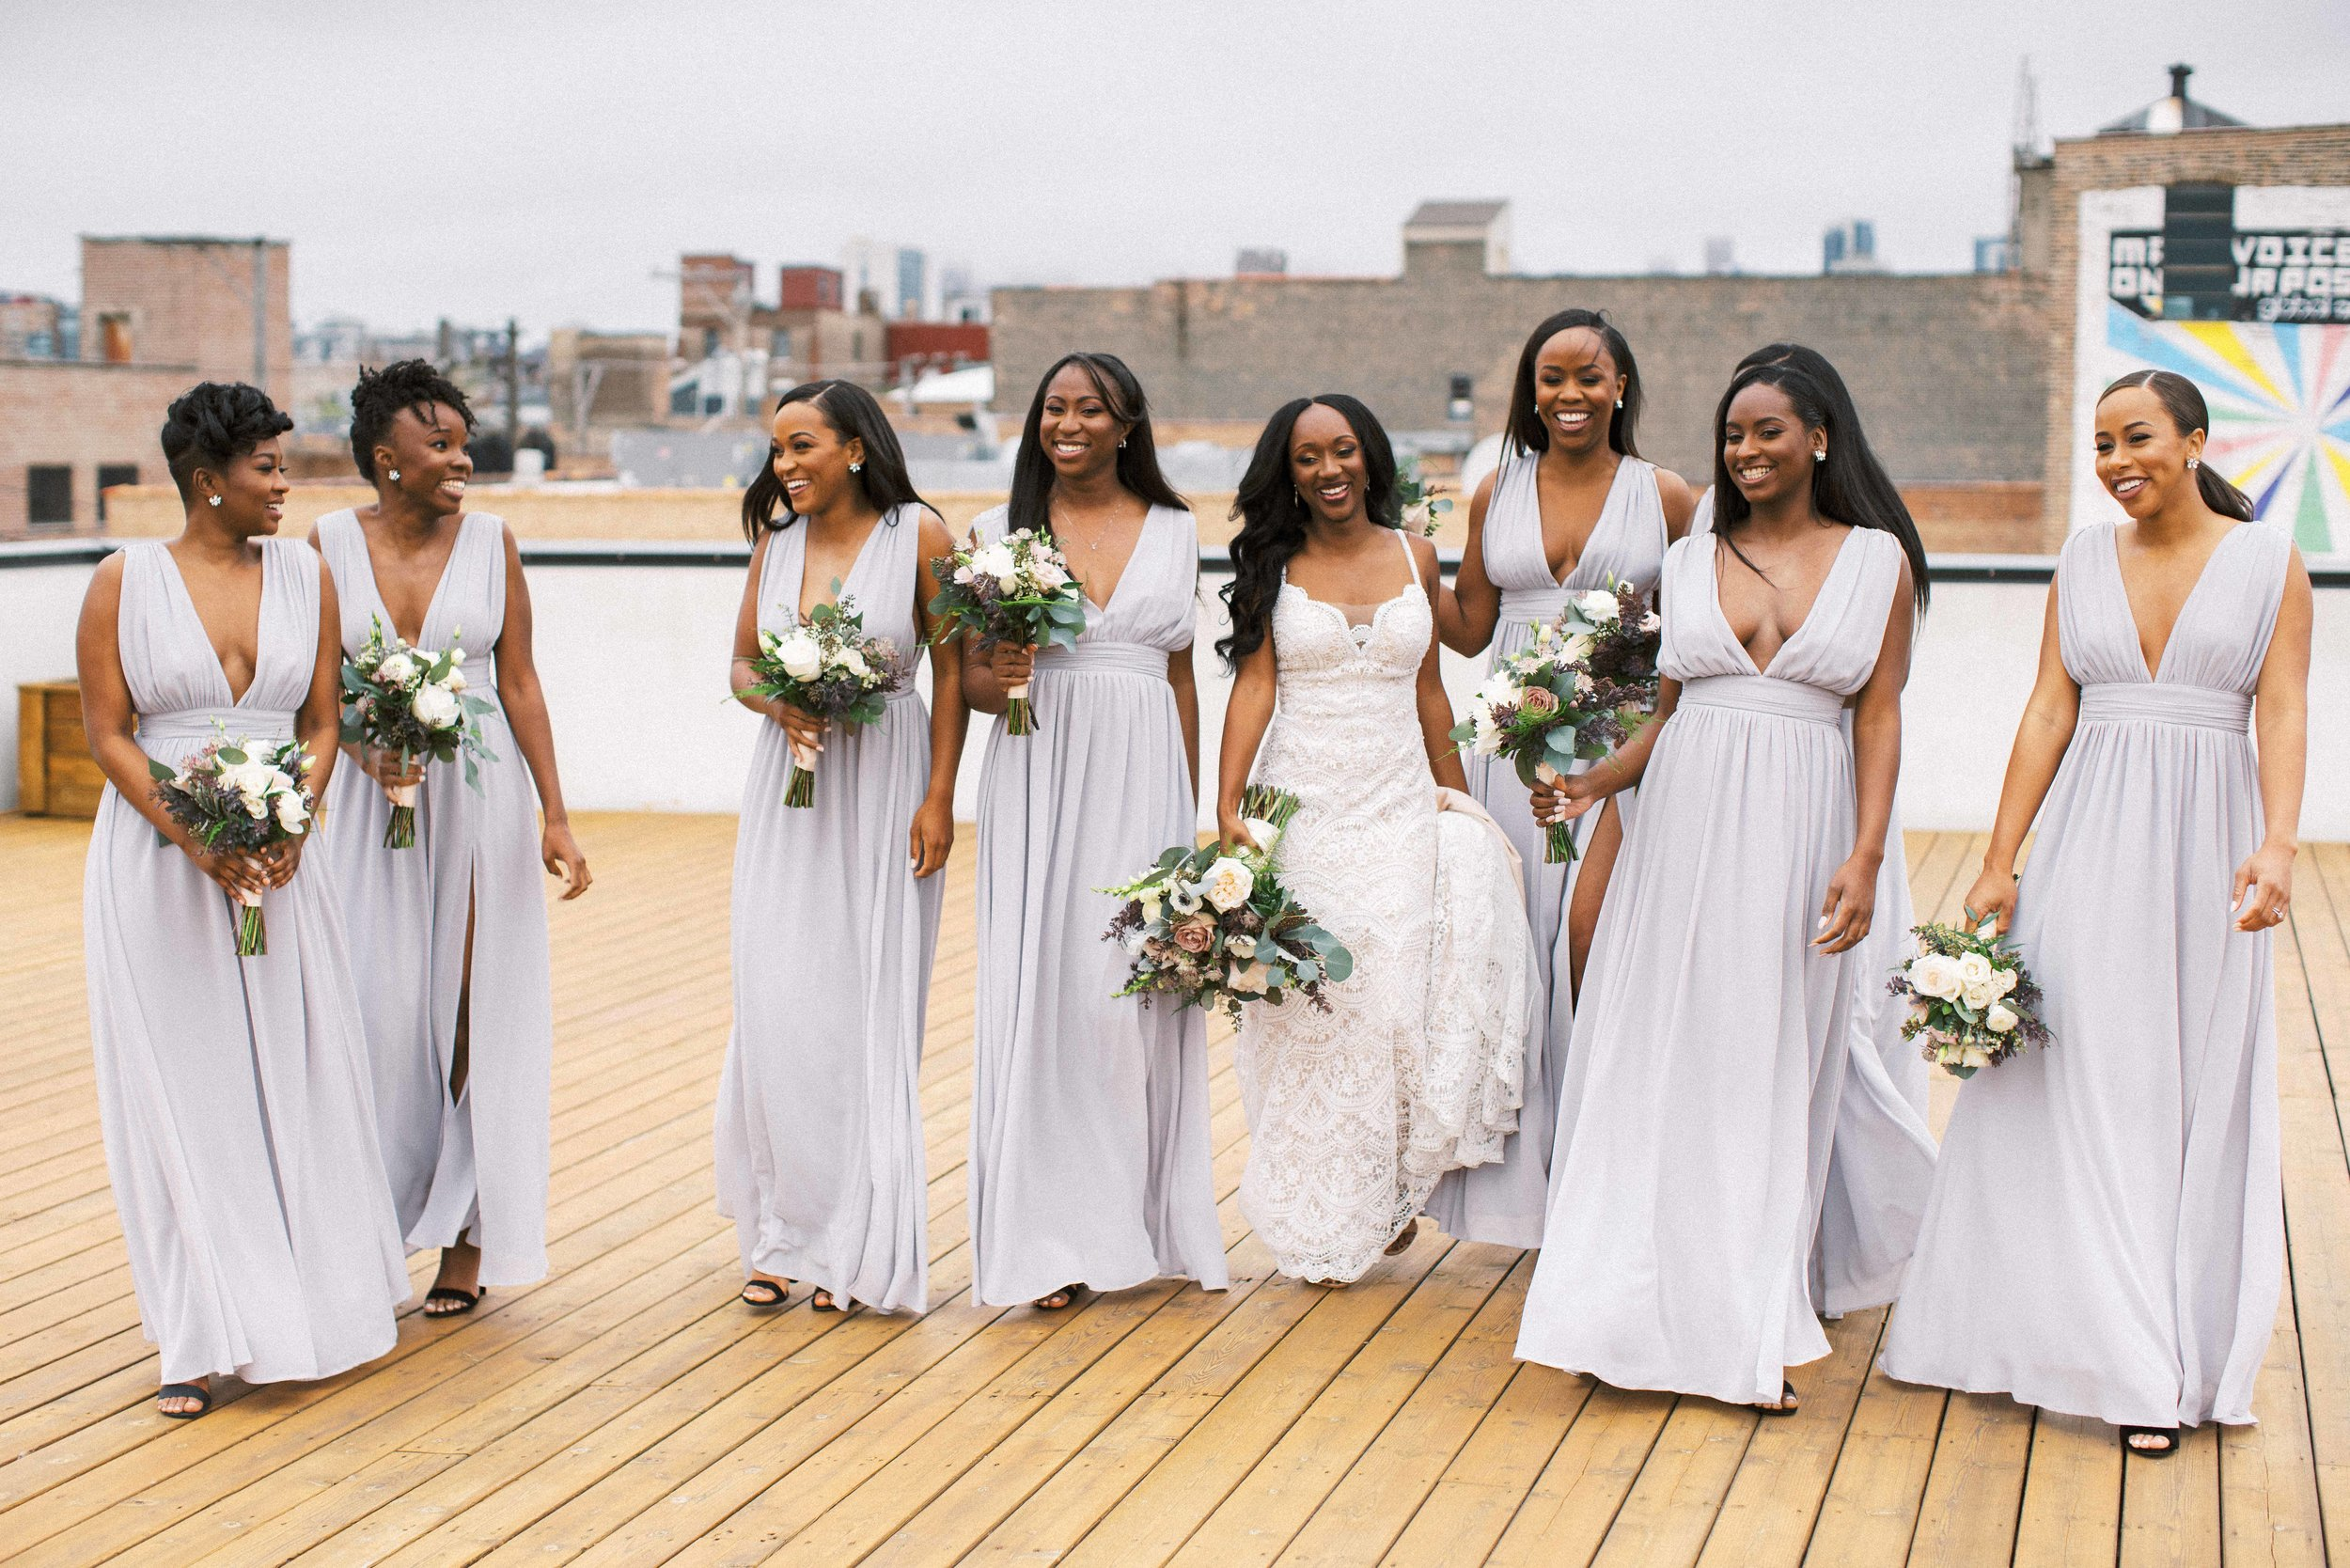 Bridesmaids Brandon Chesbro Chicago Wedding-2.jpg